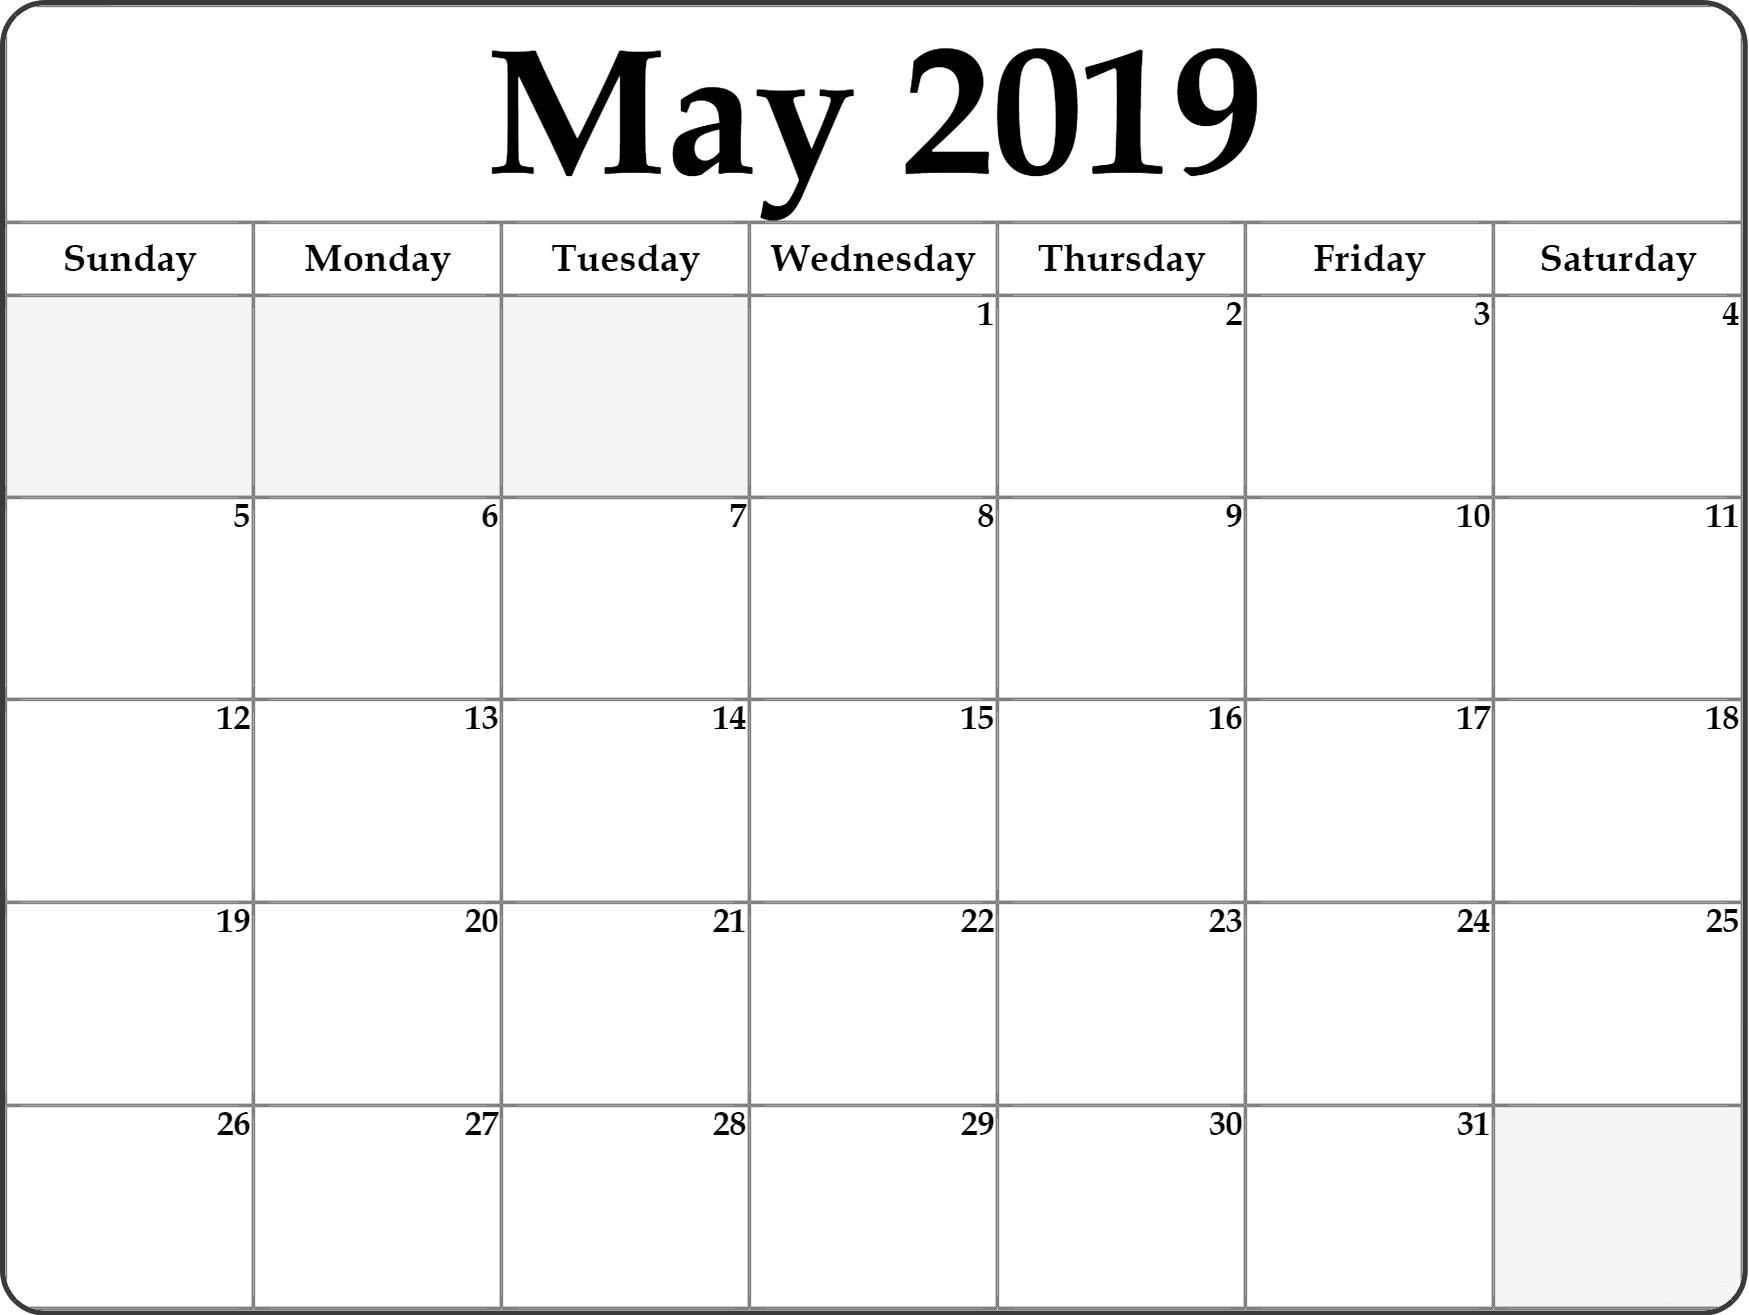 Exceptional Monthly Calendar You Can Type On And Print Free Calendars That I Can Edit And Print